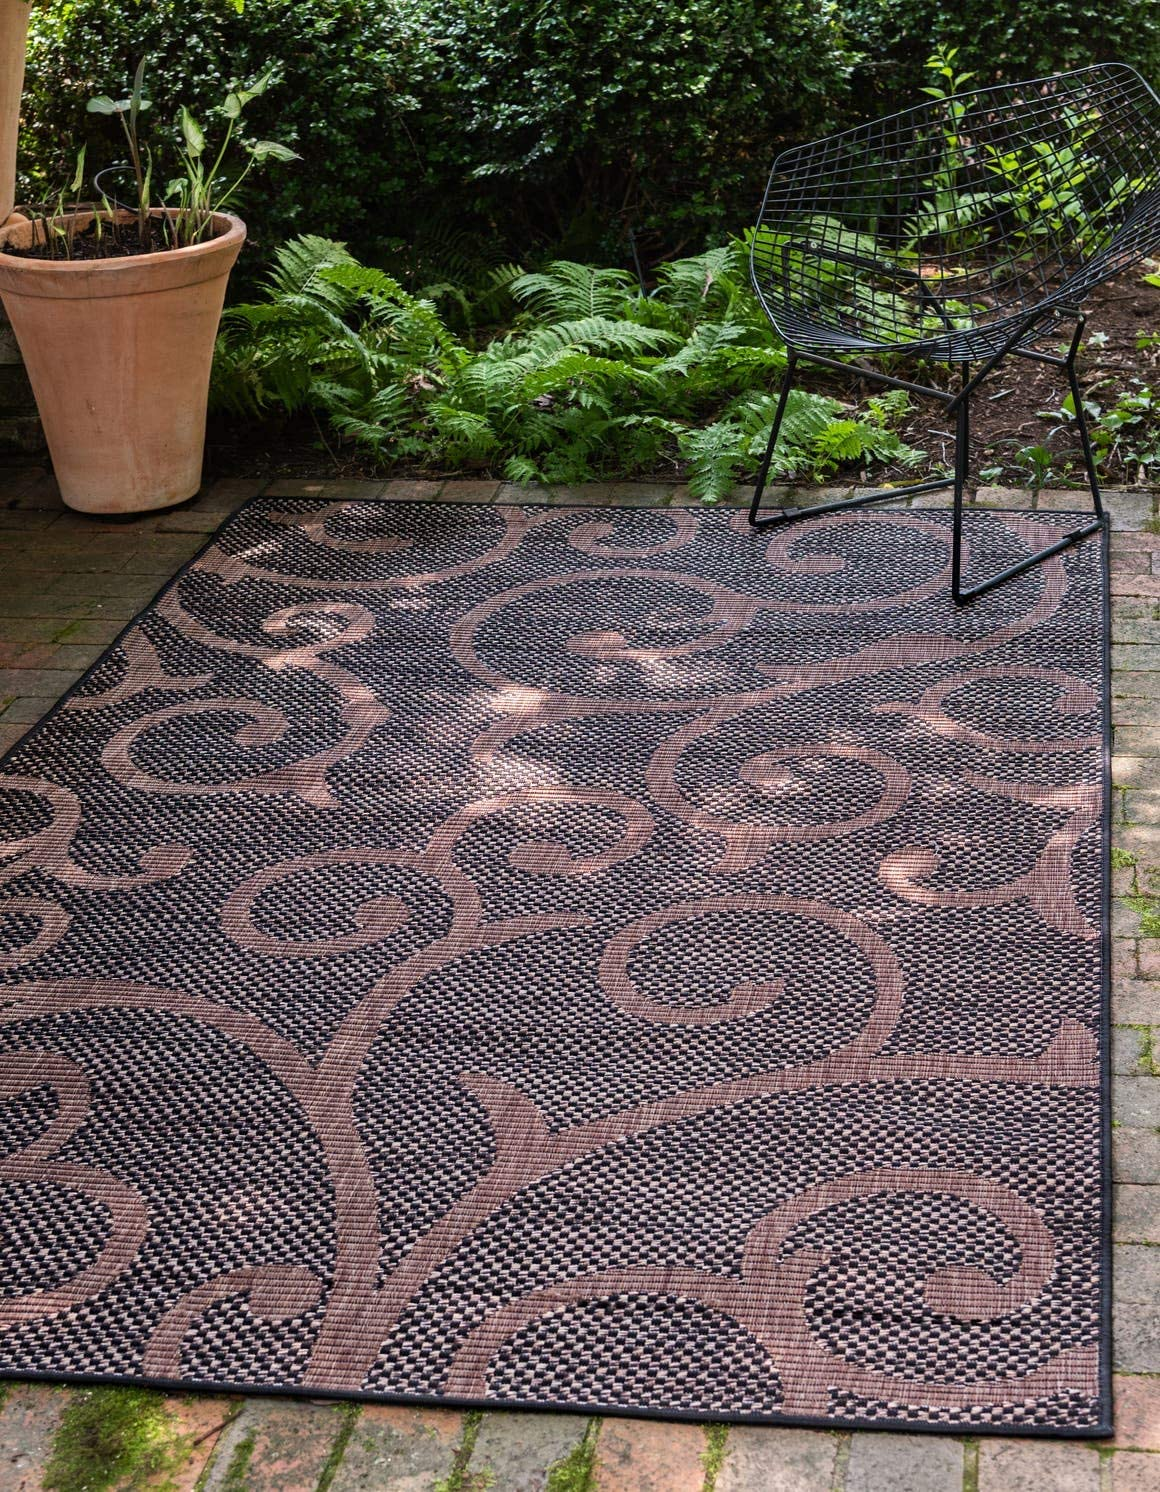 Unique Loom Outdoor Botanical Collection Abstract Swirls Transitional Indoor and Outdoor Flatweave Chocolate Brown Area Rug 9 0 x 12 0